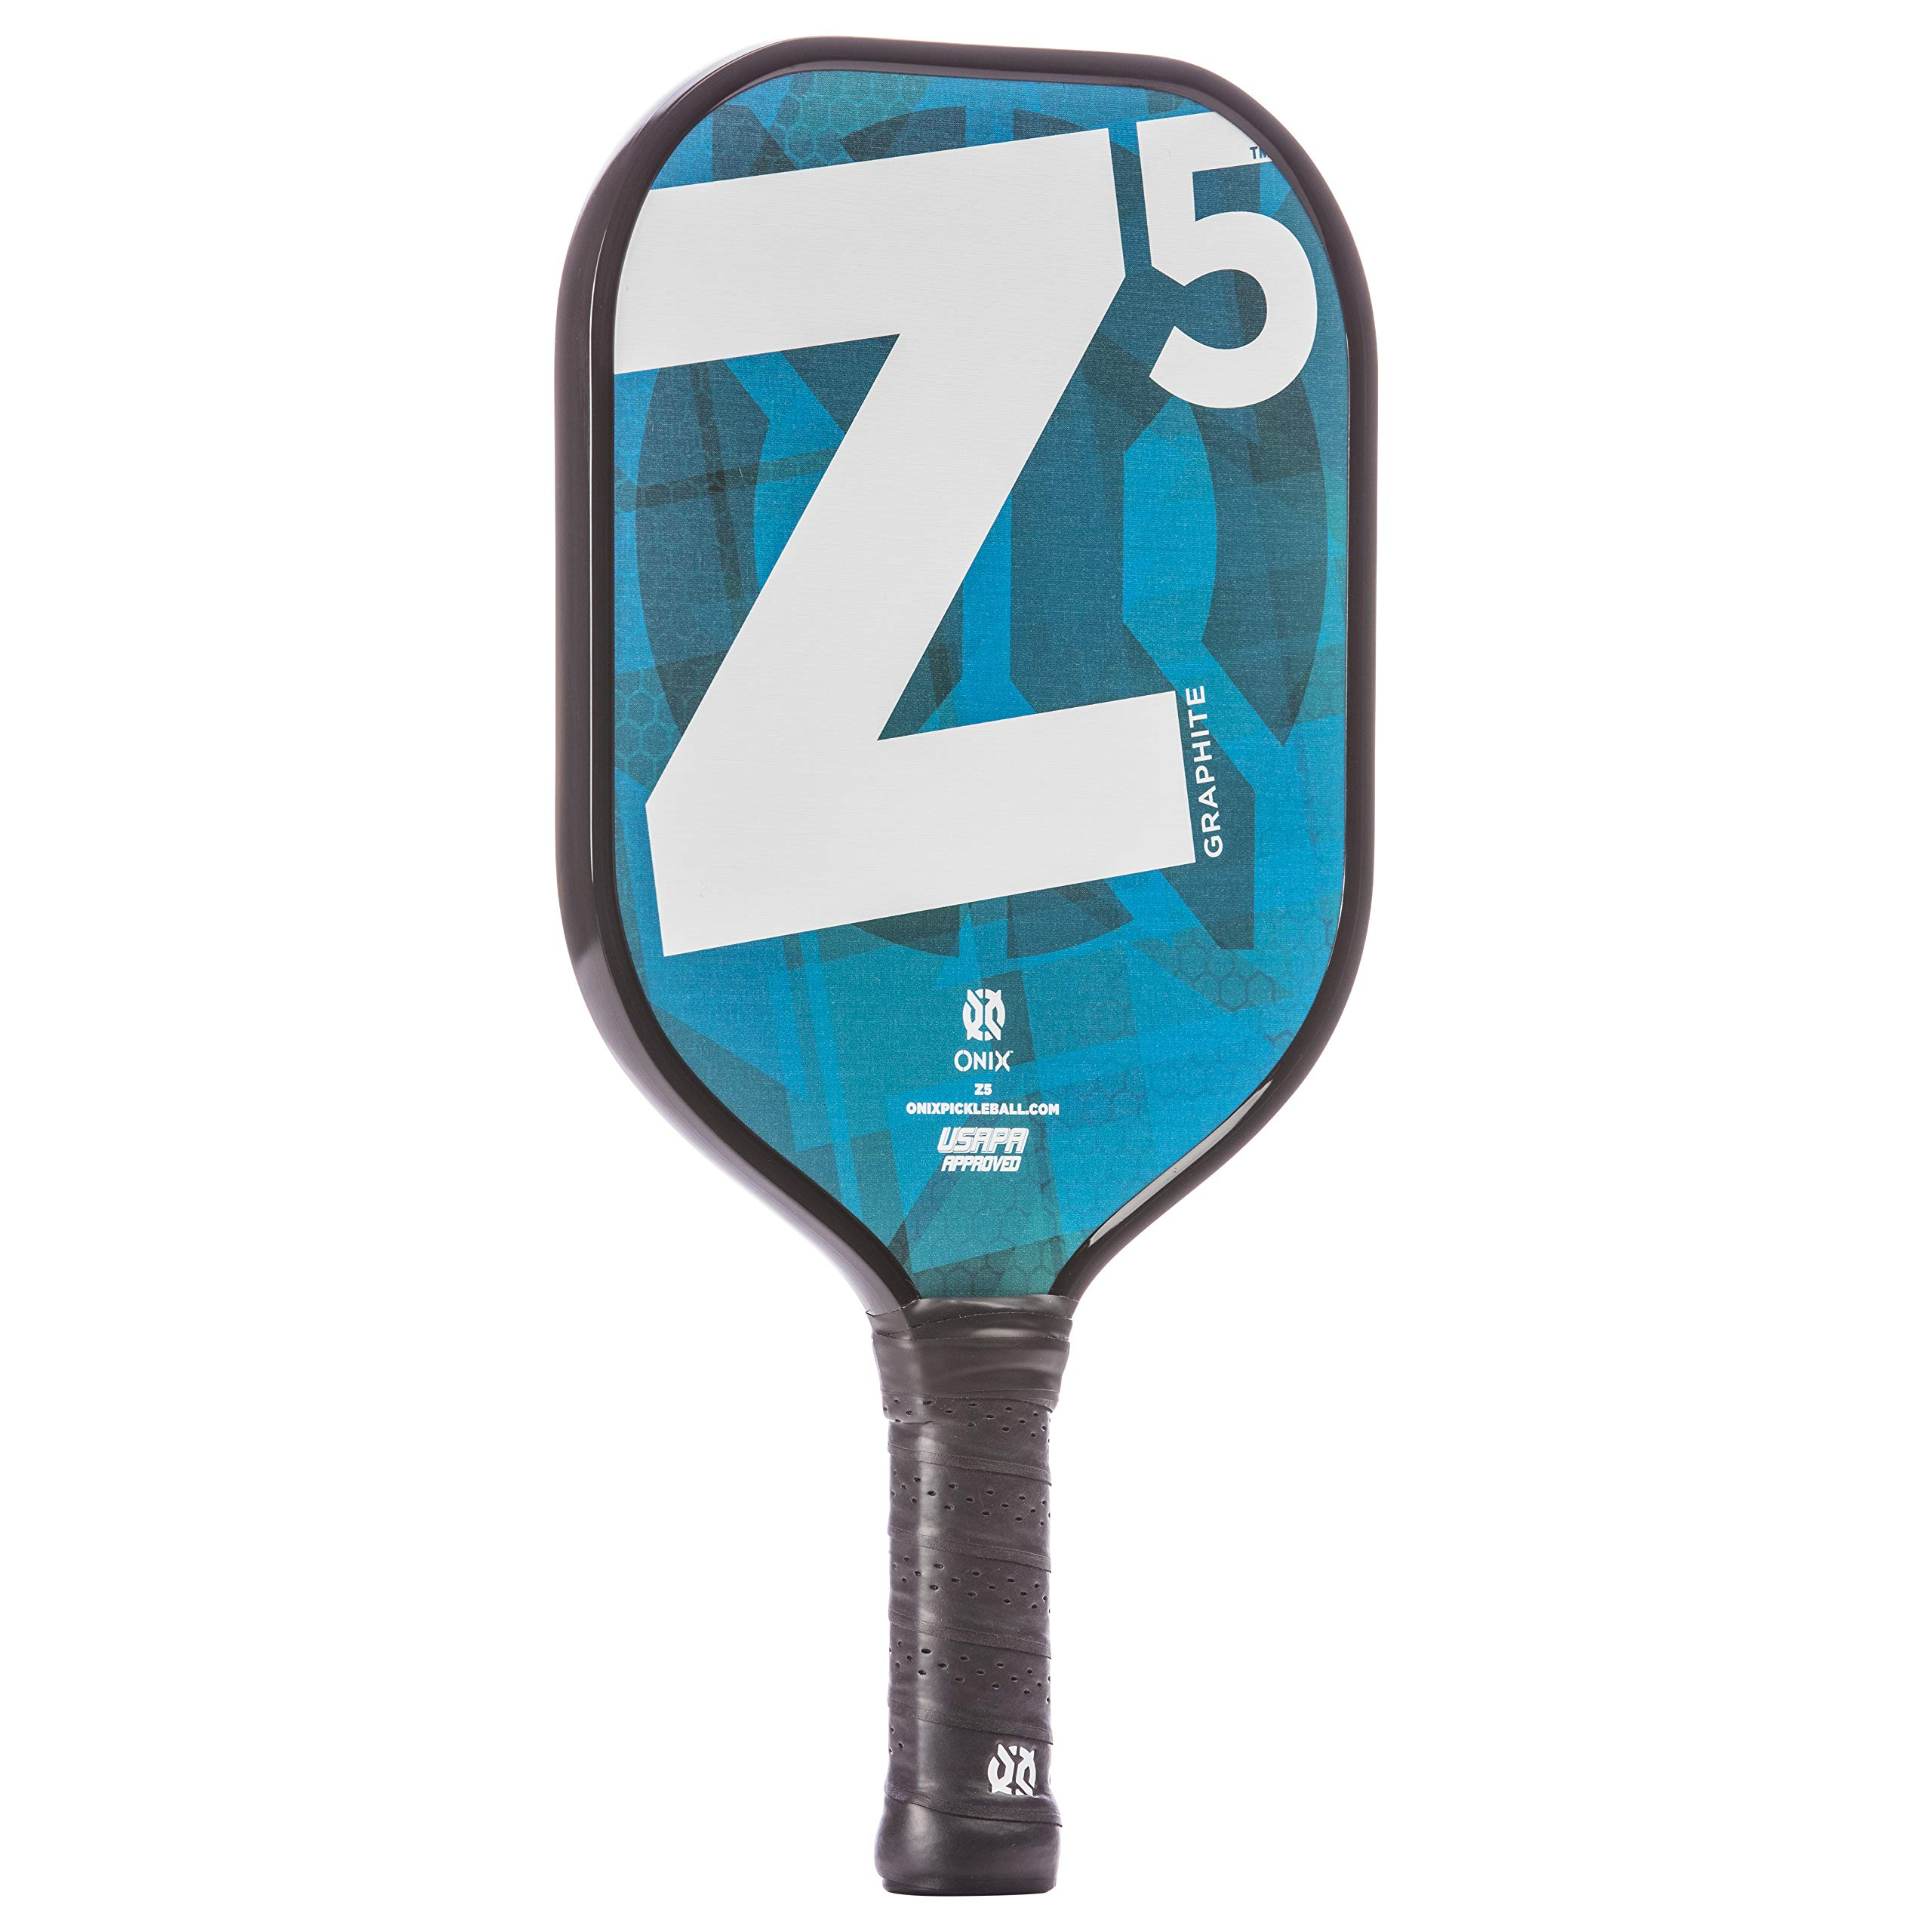 Onix Z5 Graphite Pickleball Paddle and Paddle Cover (Mod Blue) | Gift Pack by Onix (Image #2)